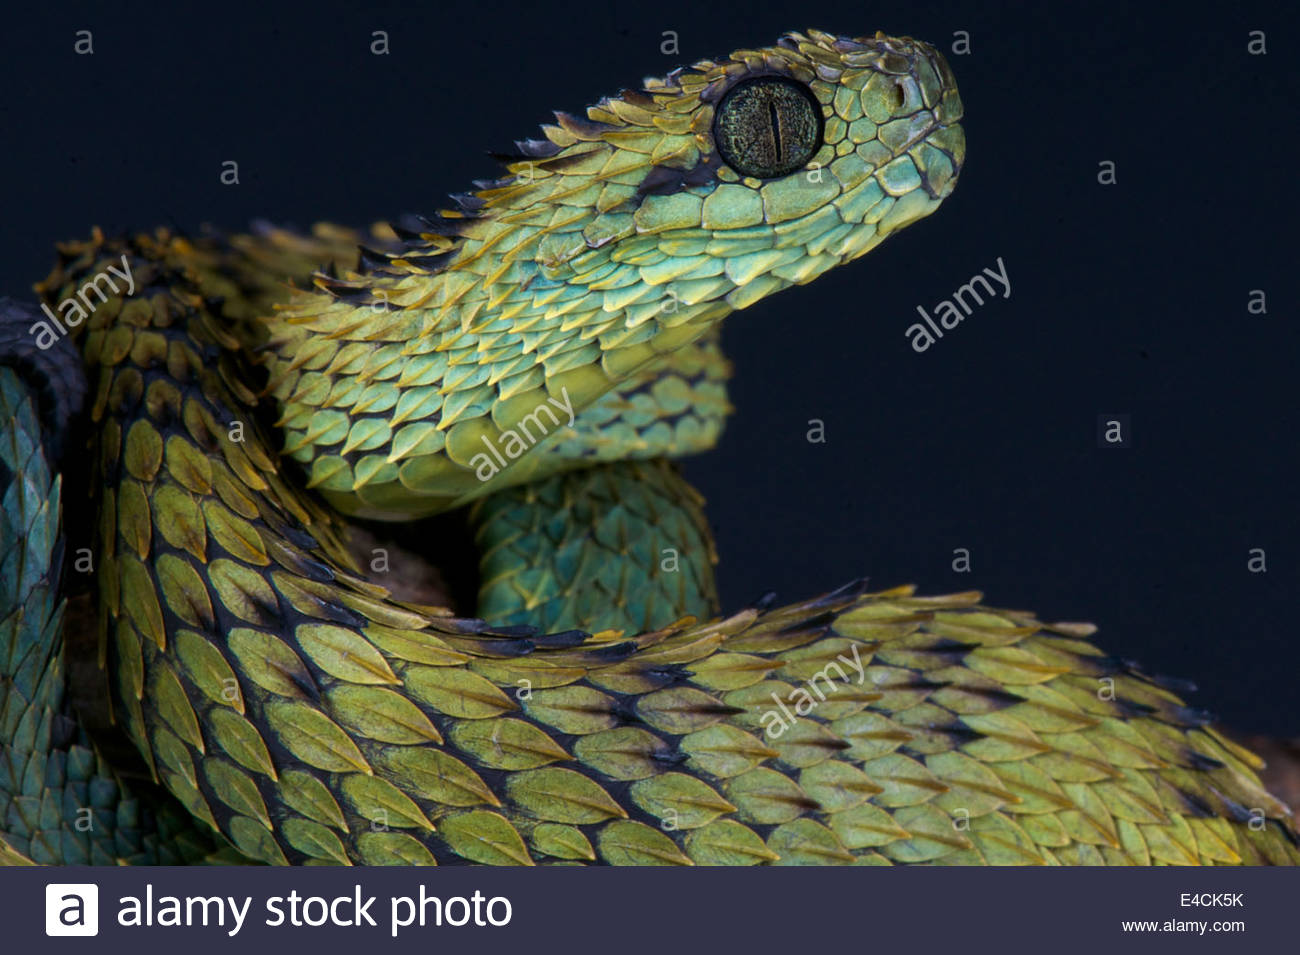 Spiny Bush Viper clipart #14, Download drawings